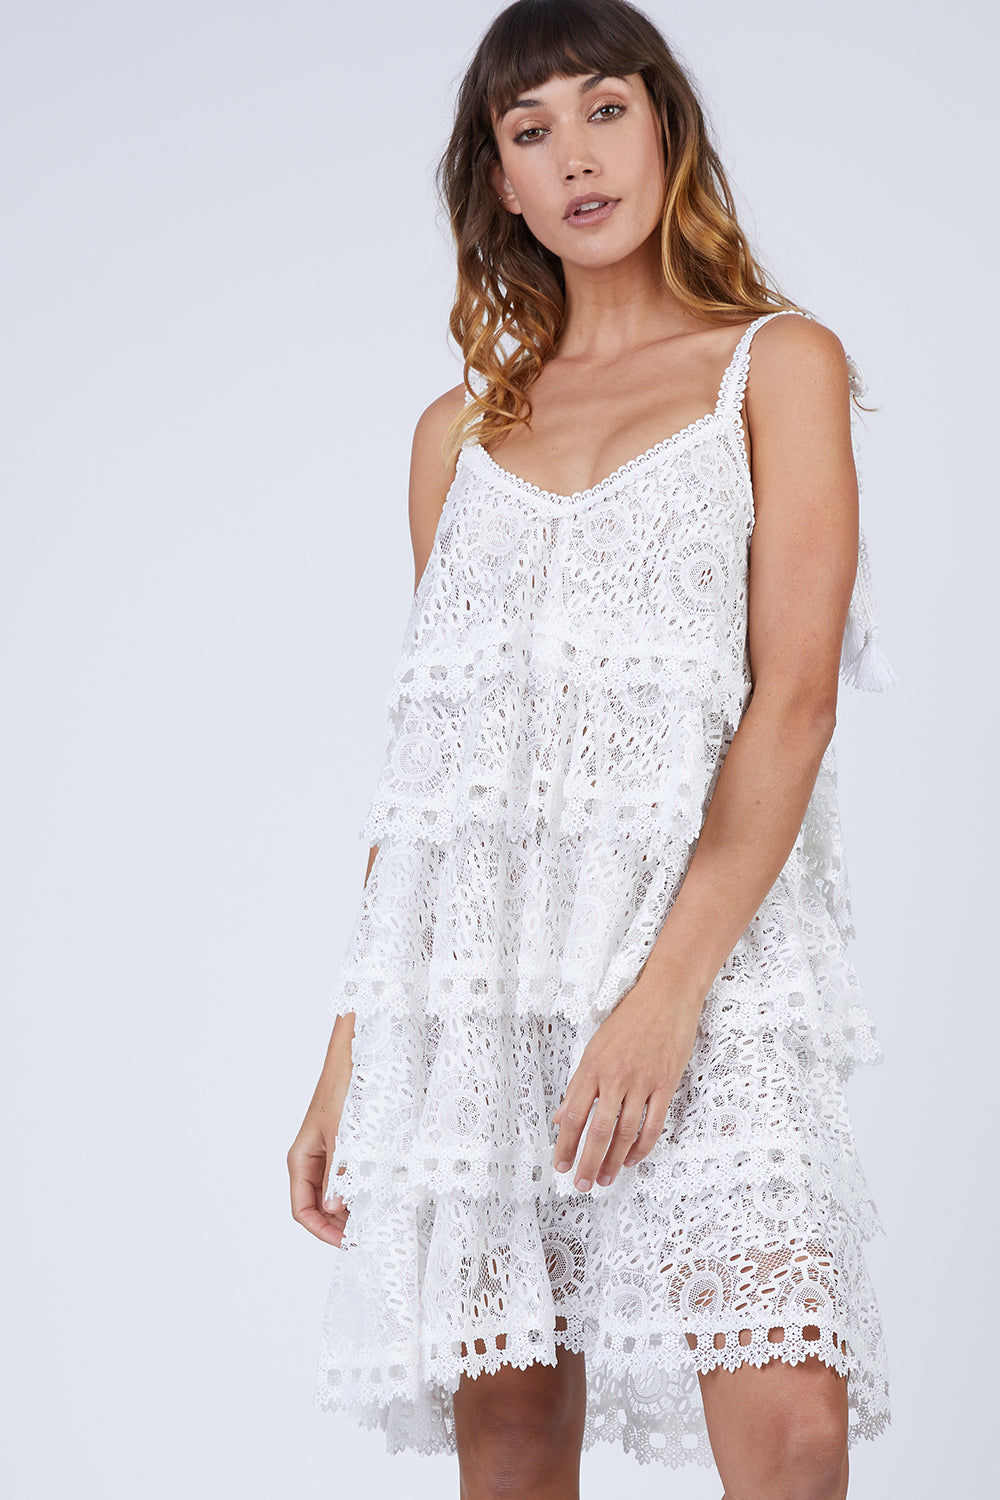 WAIMARI Audrey Tiered Ruffle Lace Sundress - Ivory White Dress | Ivory White| Waimari Audrey Tiered Ruffle Lace Sundress - Ivory White Lace dress V neckline  Ruffle tiers Shoulder ties with tassel ends  Front View